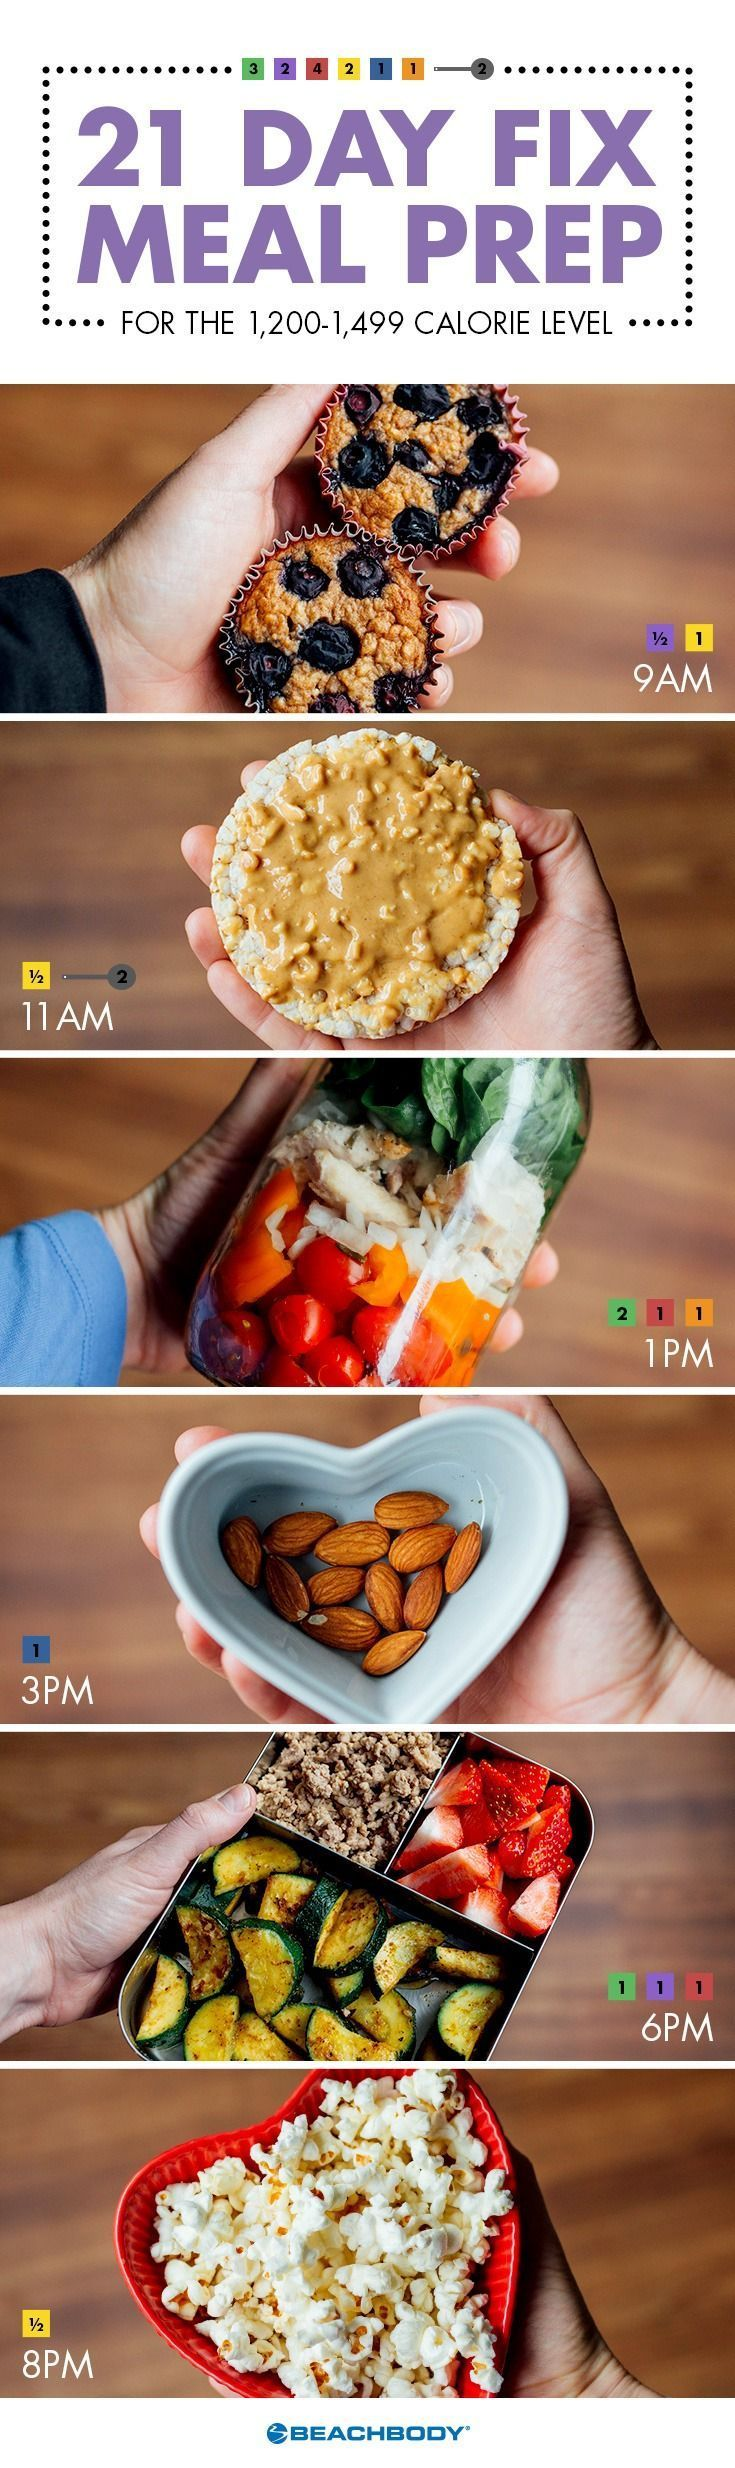 Use these shortcuts and simple menus to inspire your own meal prep. Find the meal prep for your calorie level! | Meal Prep for The Week